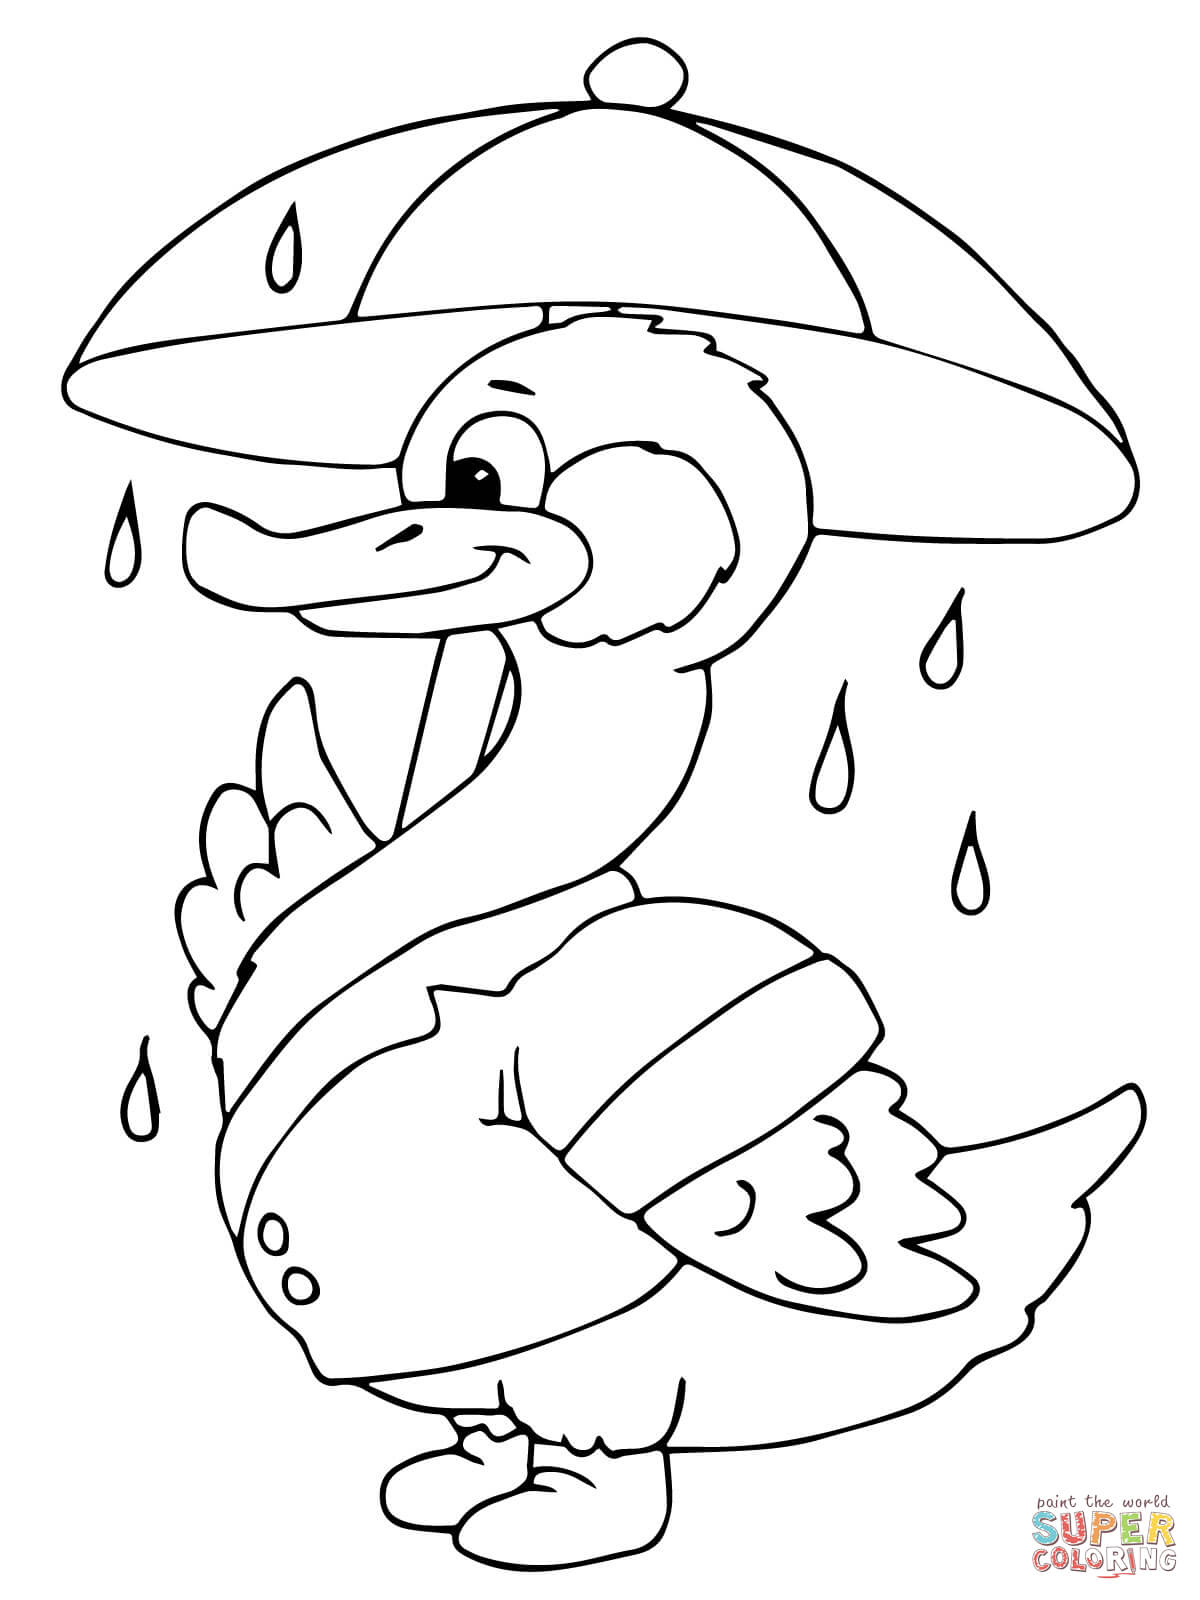 Duck With Umbrella Under The Rain Coloring Page Free Printable